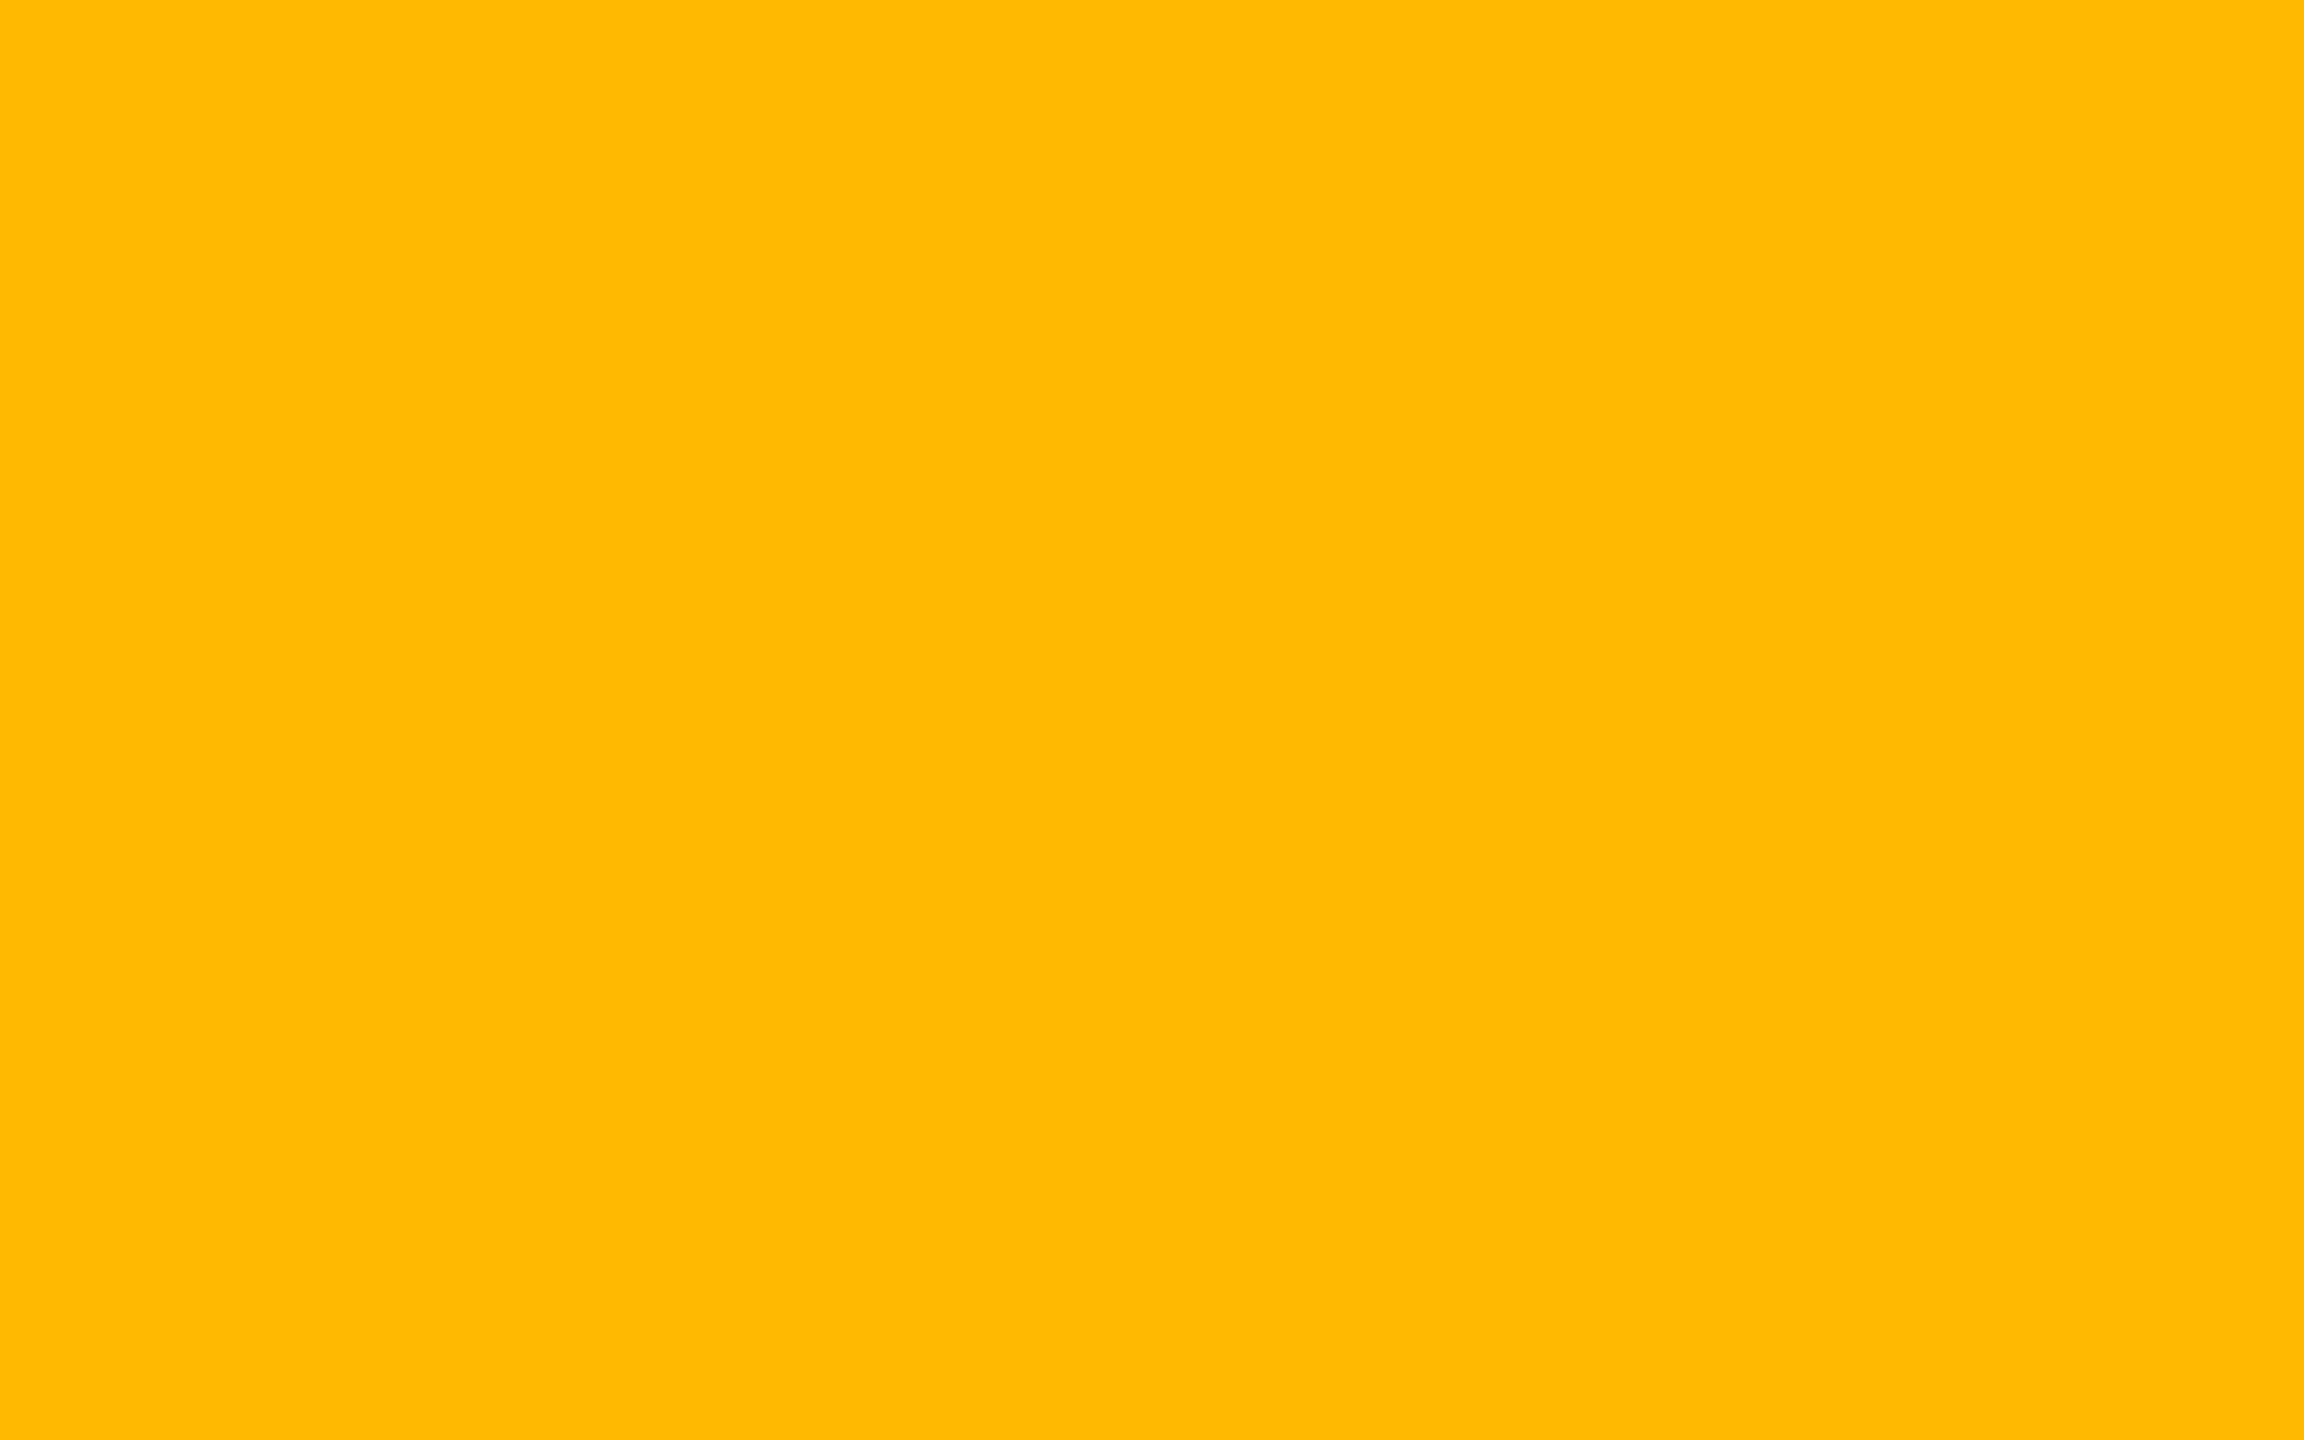 2304x1440 Selective Yellow Solid Color Background